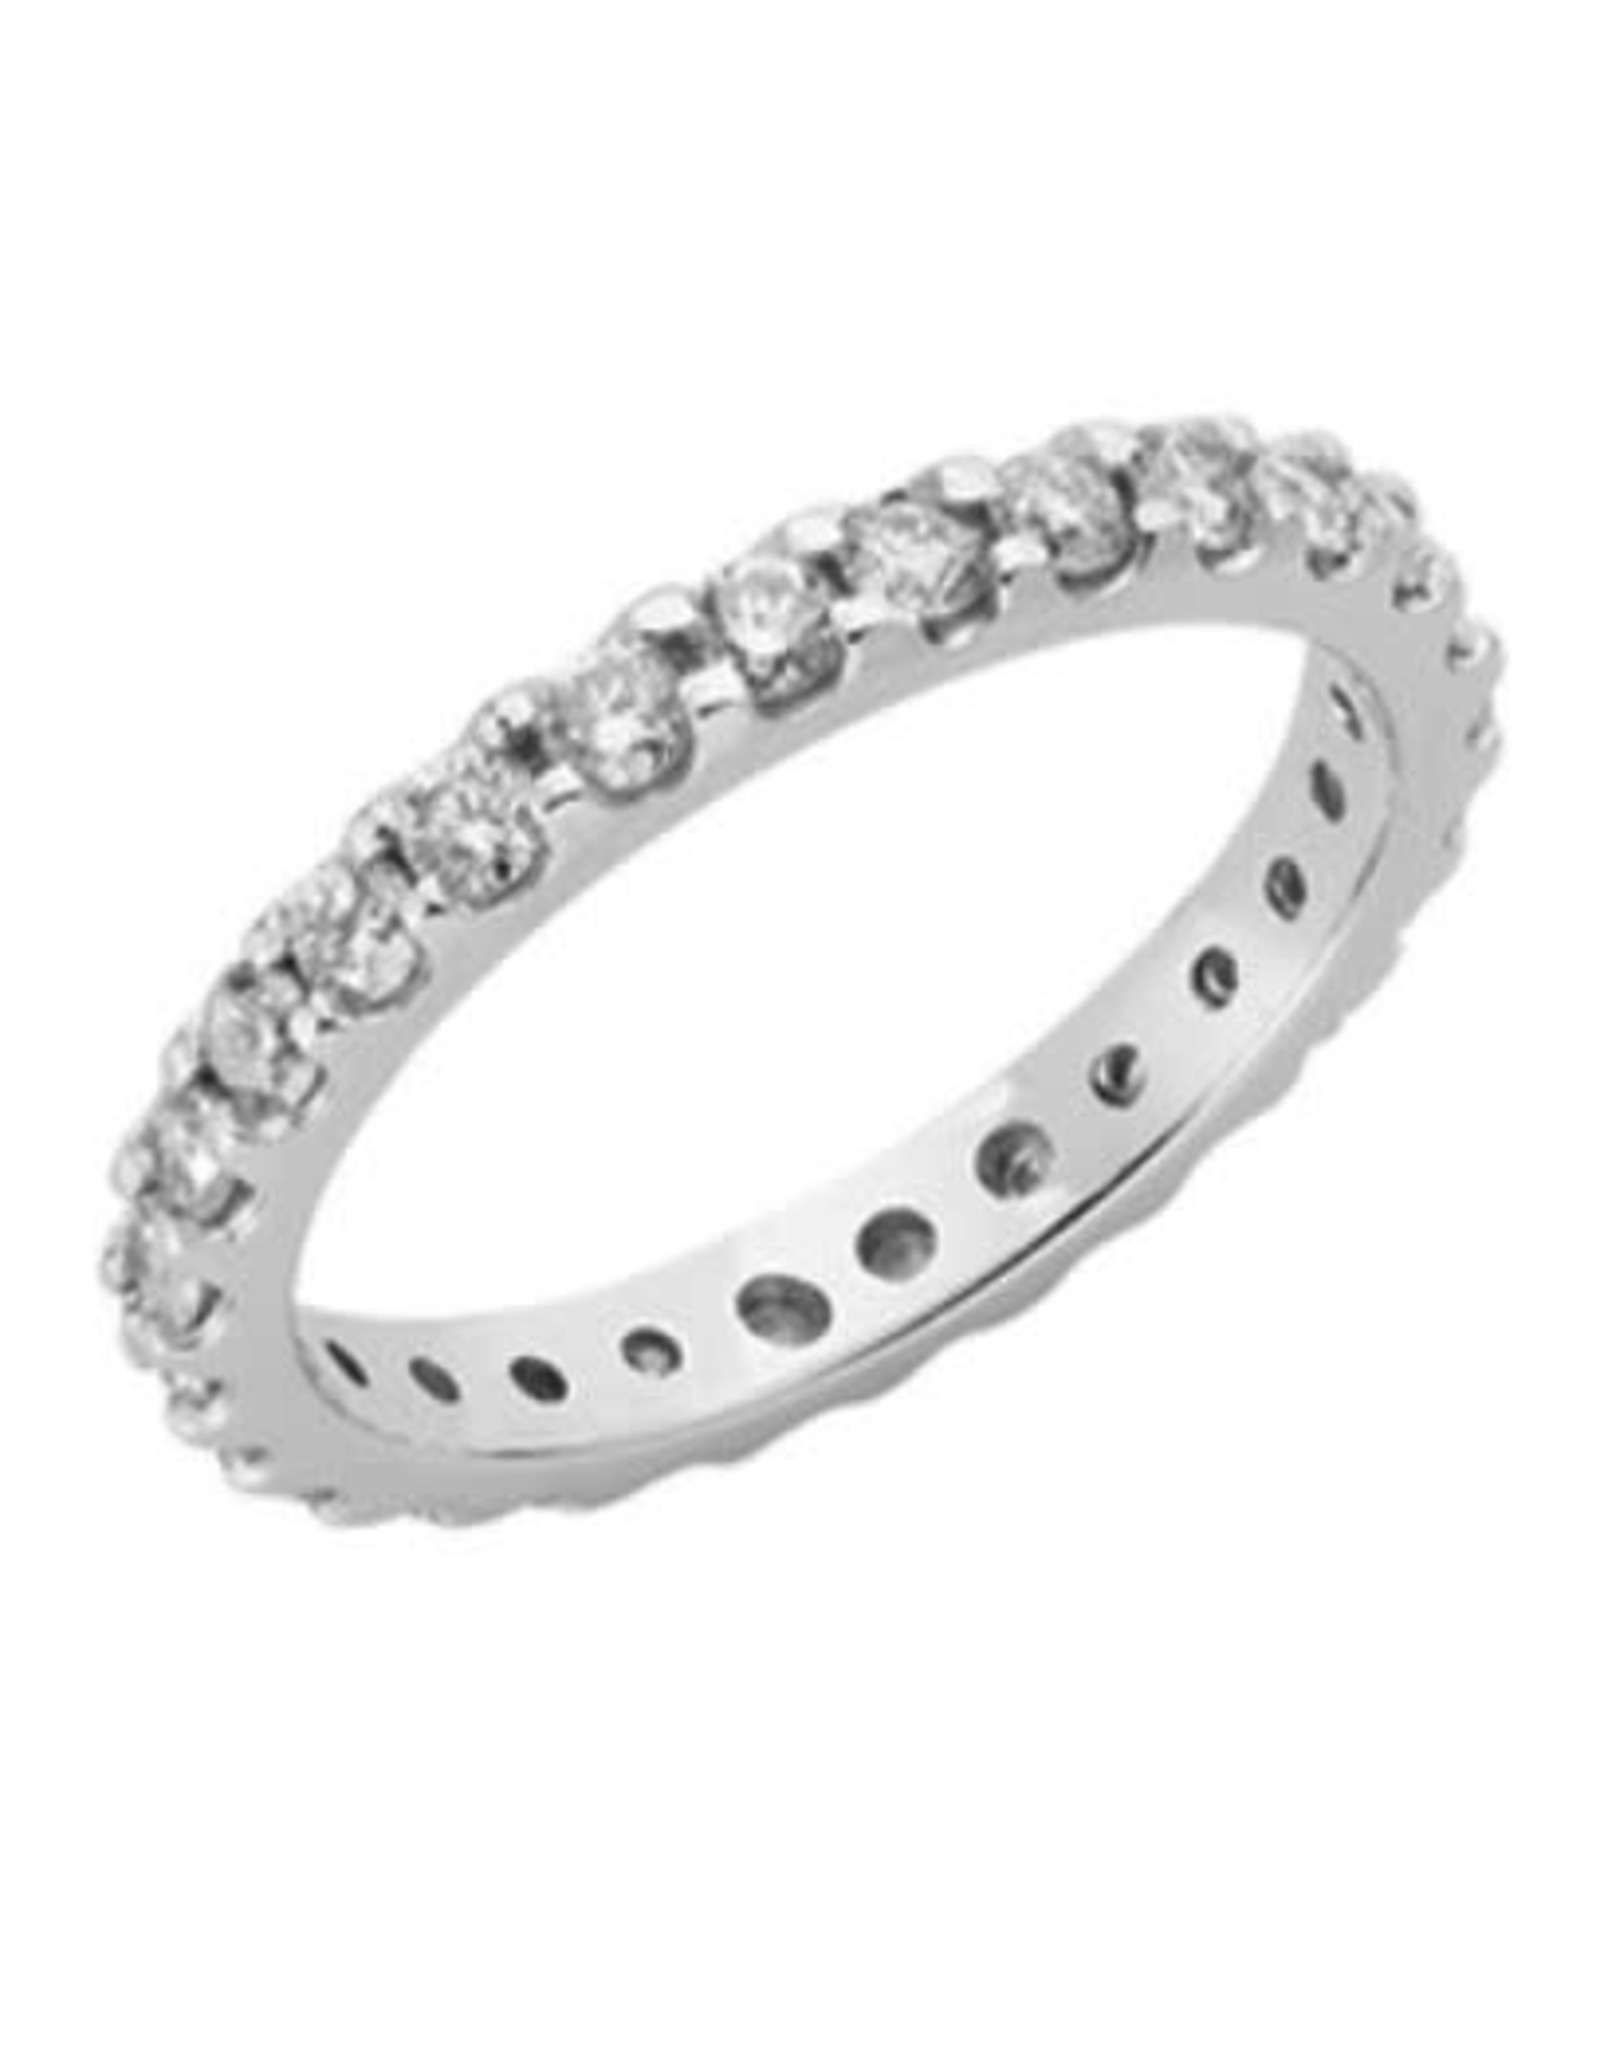 14K White Gold Shared Prong Diamond Eternity Band, 0.95 ct